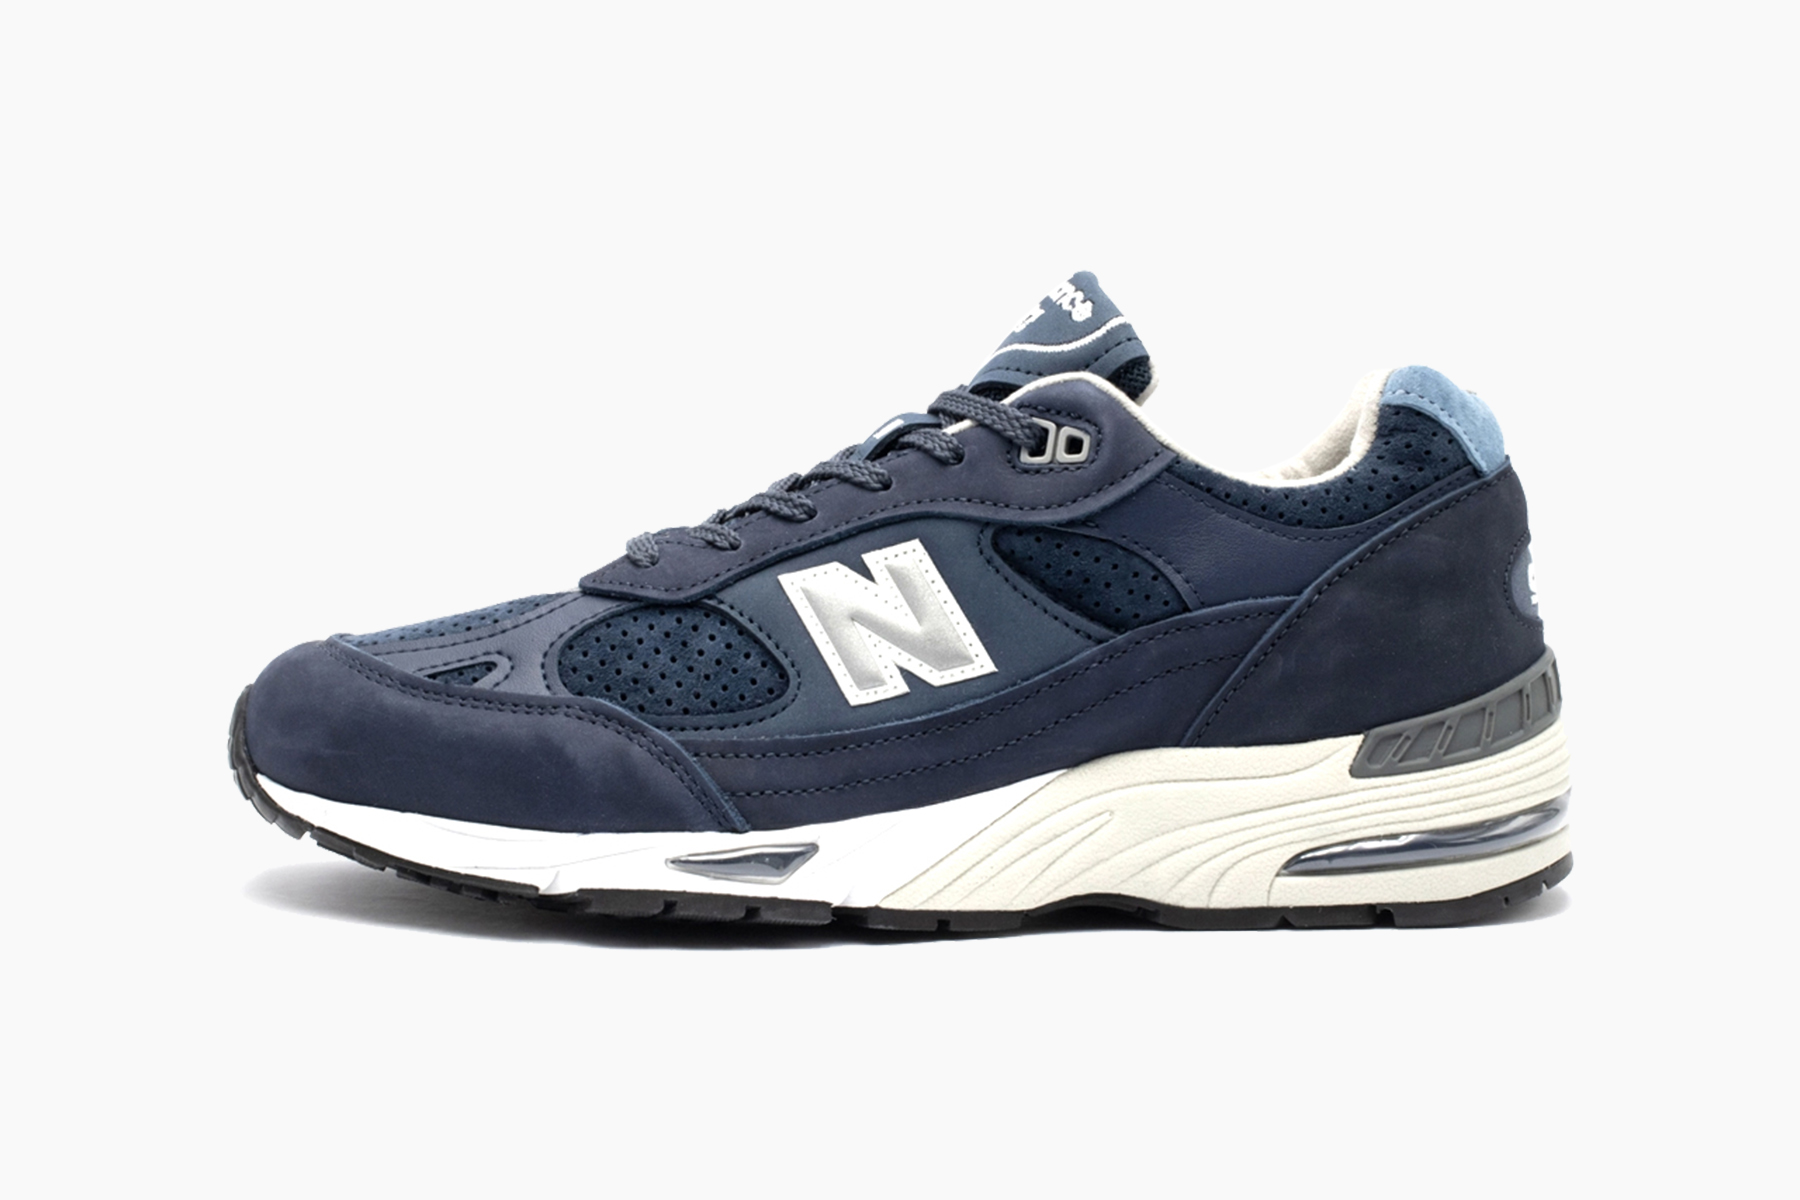 New Balance 991 Made in England